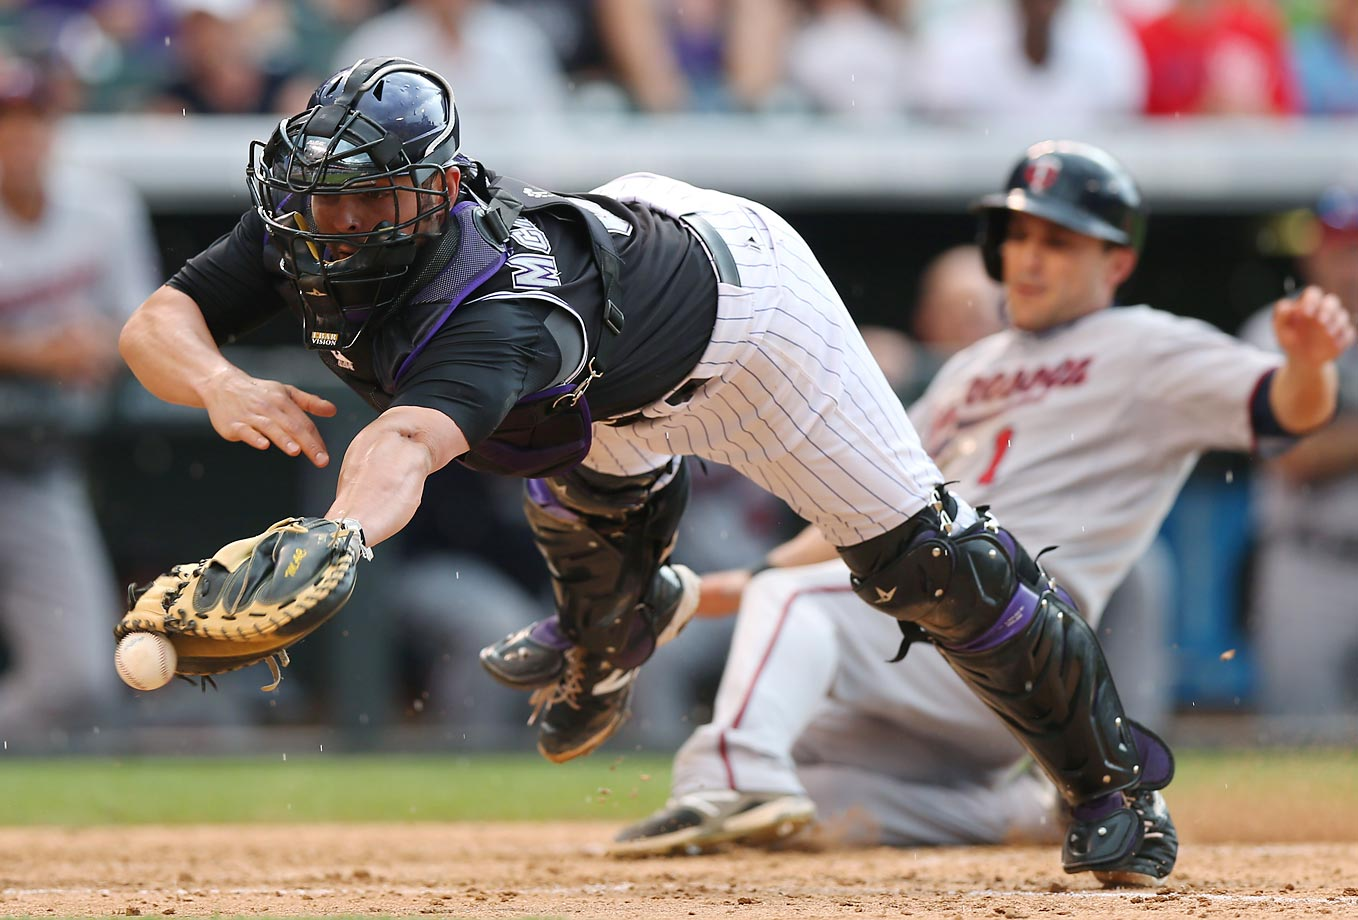 Colorado Rockies catcher Michael McKenry dives to field a throw from the outfield as Minnesota Twins outfielder Sam Fuld scores on a single by Chris Parmelee in the eighth inning of the Twins' 9-3 victory at Coors Field in Denver, Colorado, on July 12, 2014.